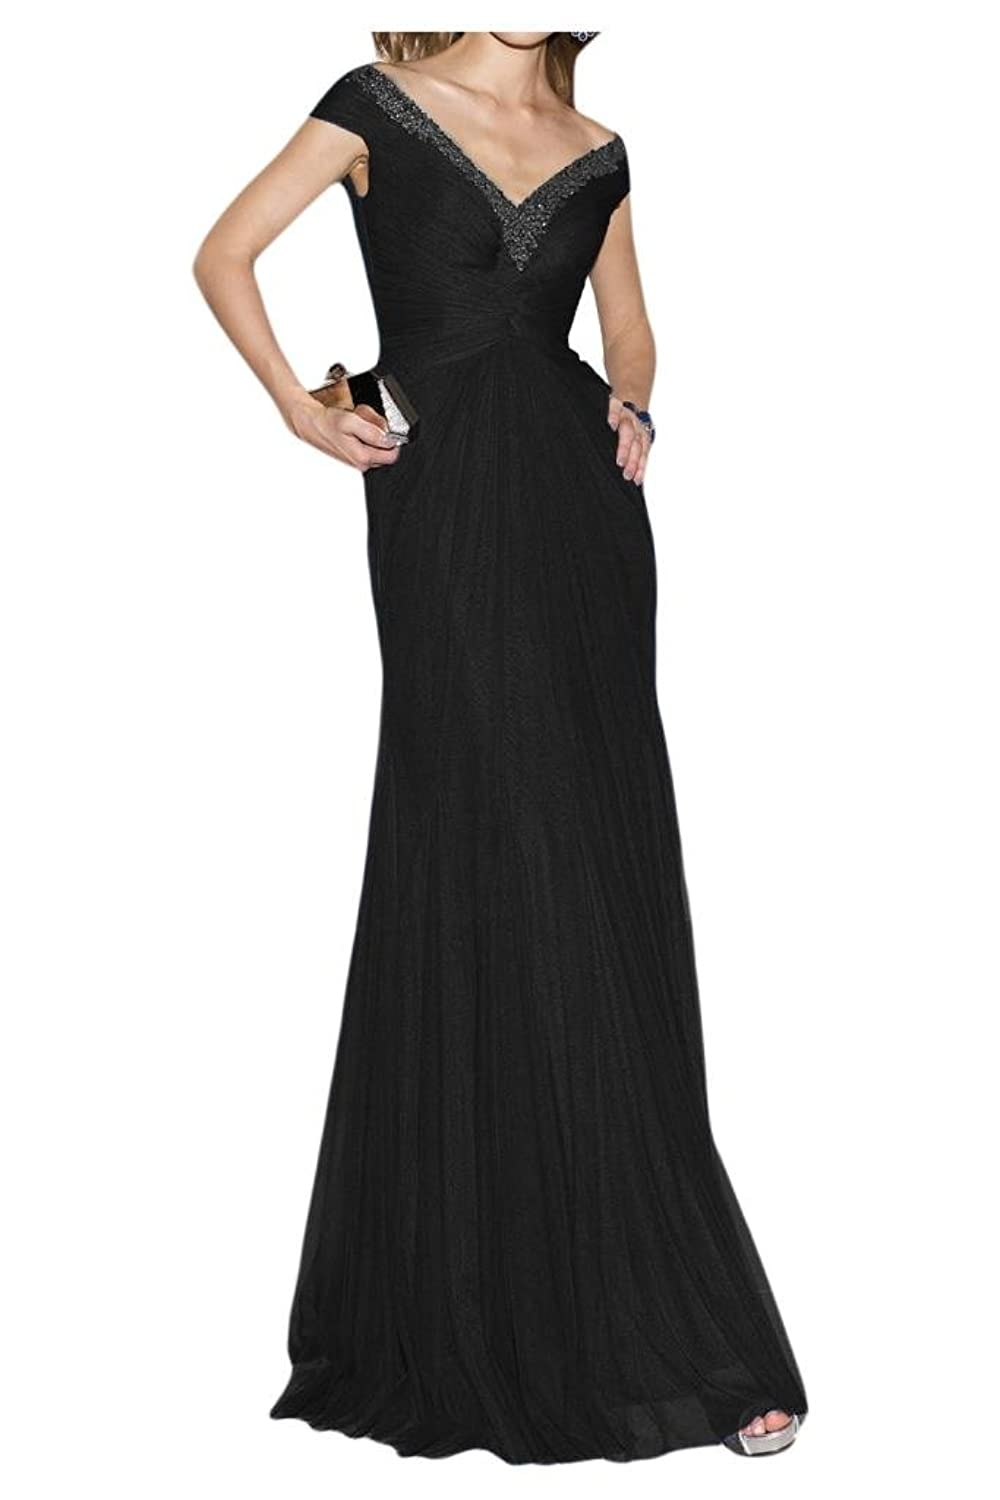 Gorgeous Bride Sexy Backless Off-shoulder Evening Gown Prom Gown Tulle